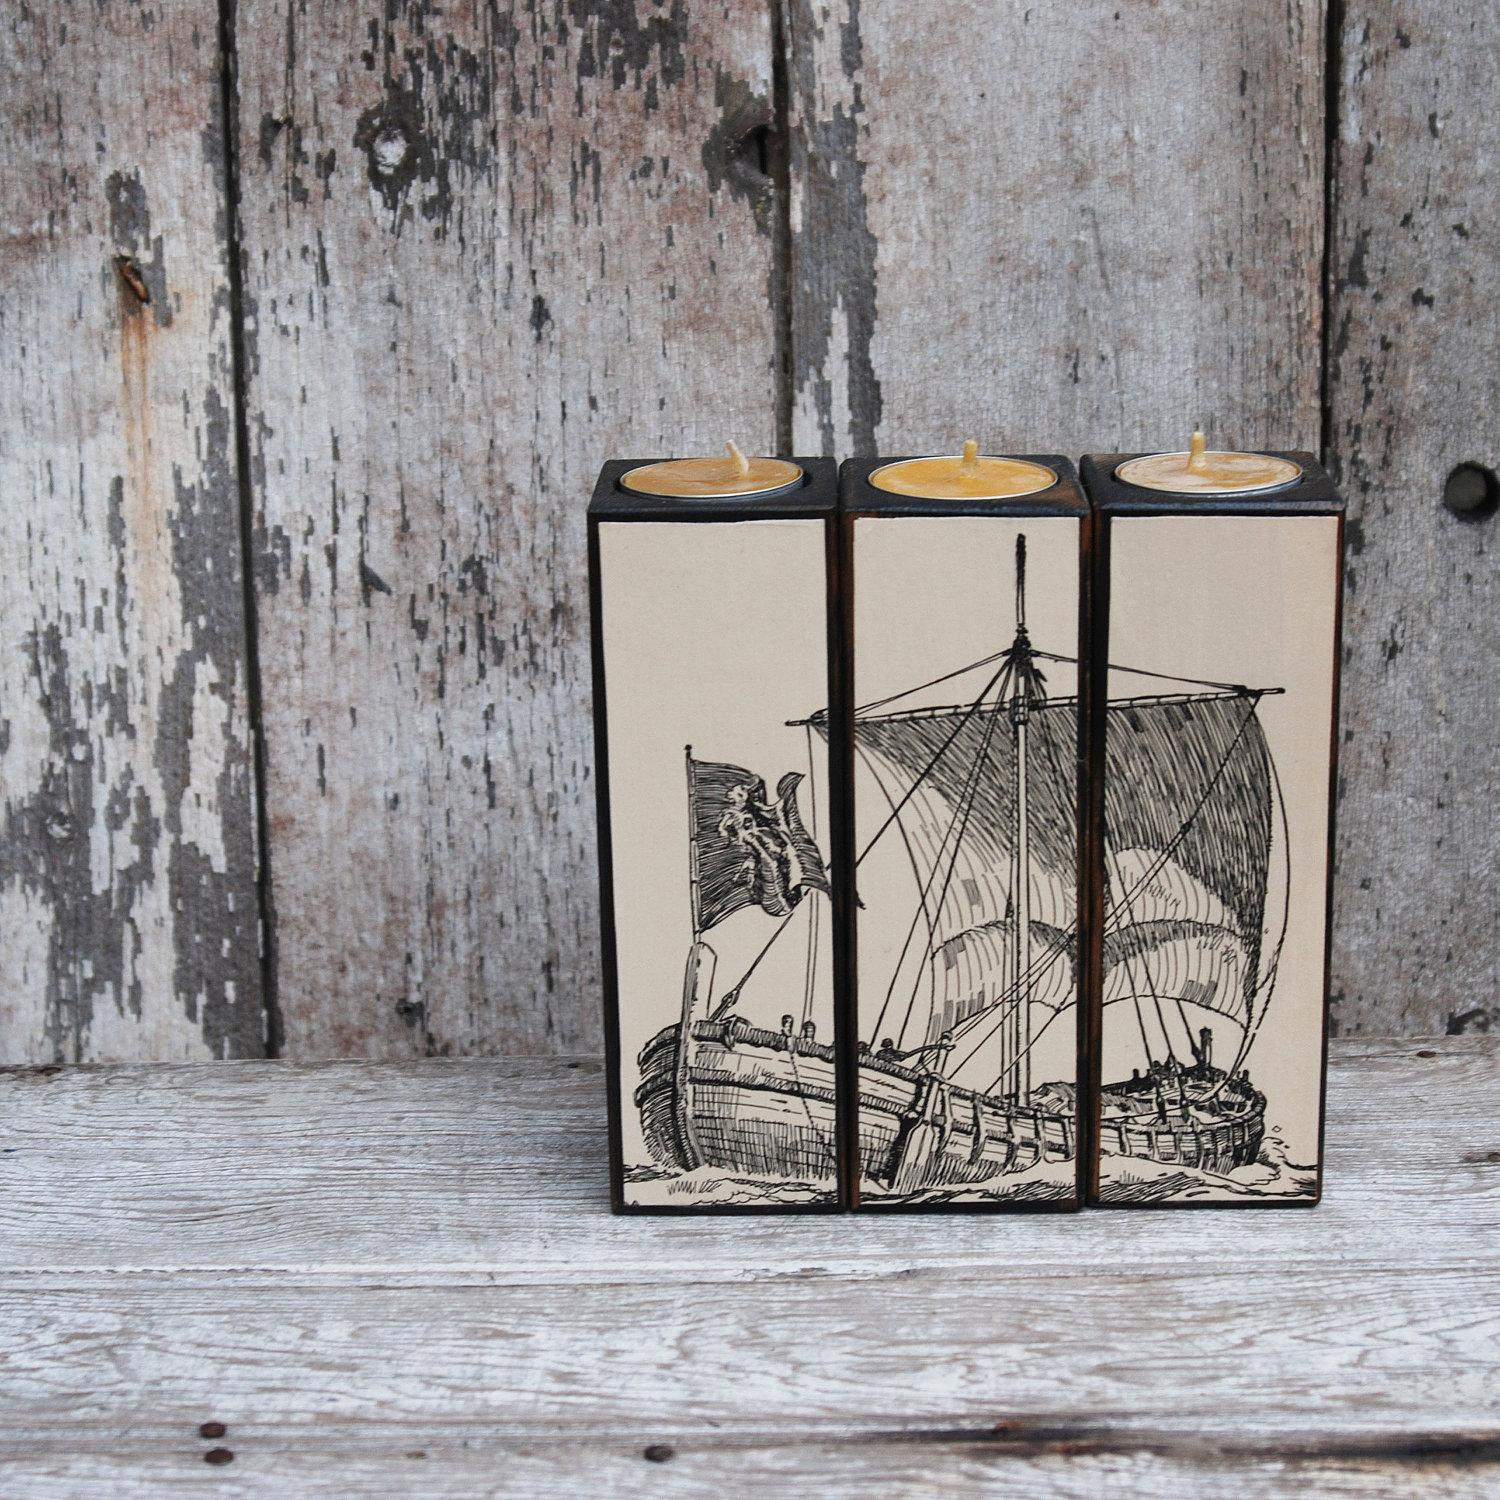 Candleblock Set Black Milkpaint Ship by PegandAwl on Etsy